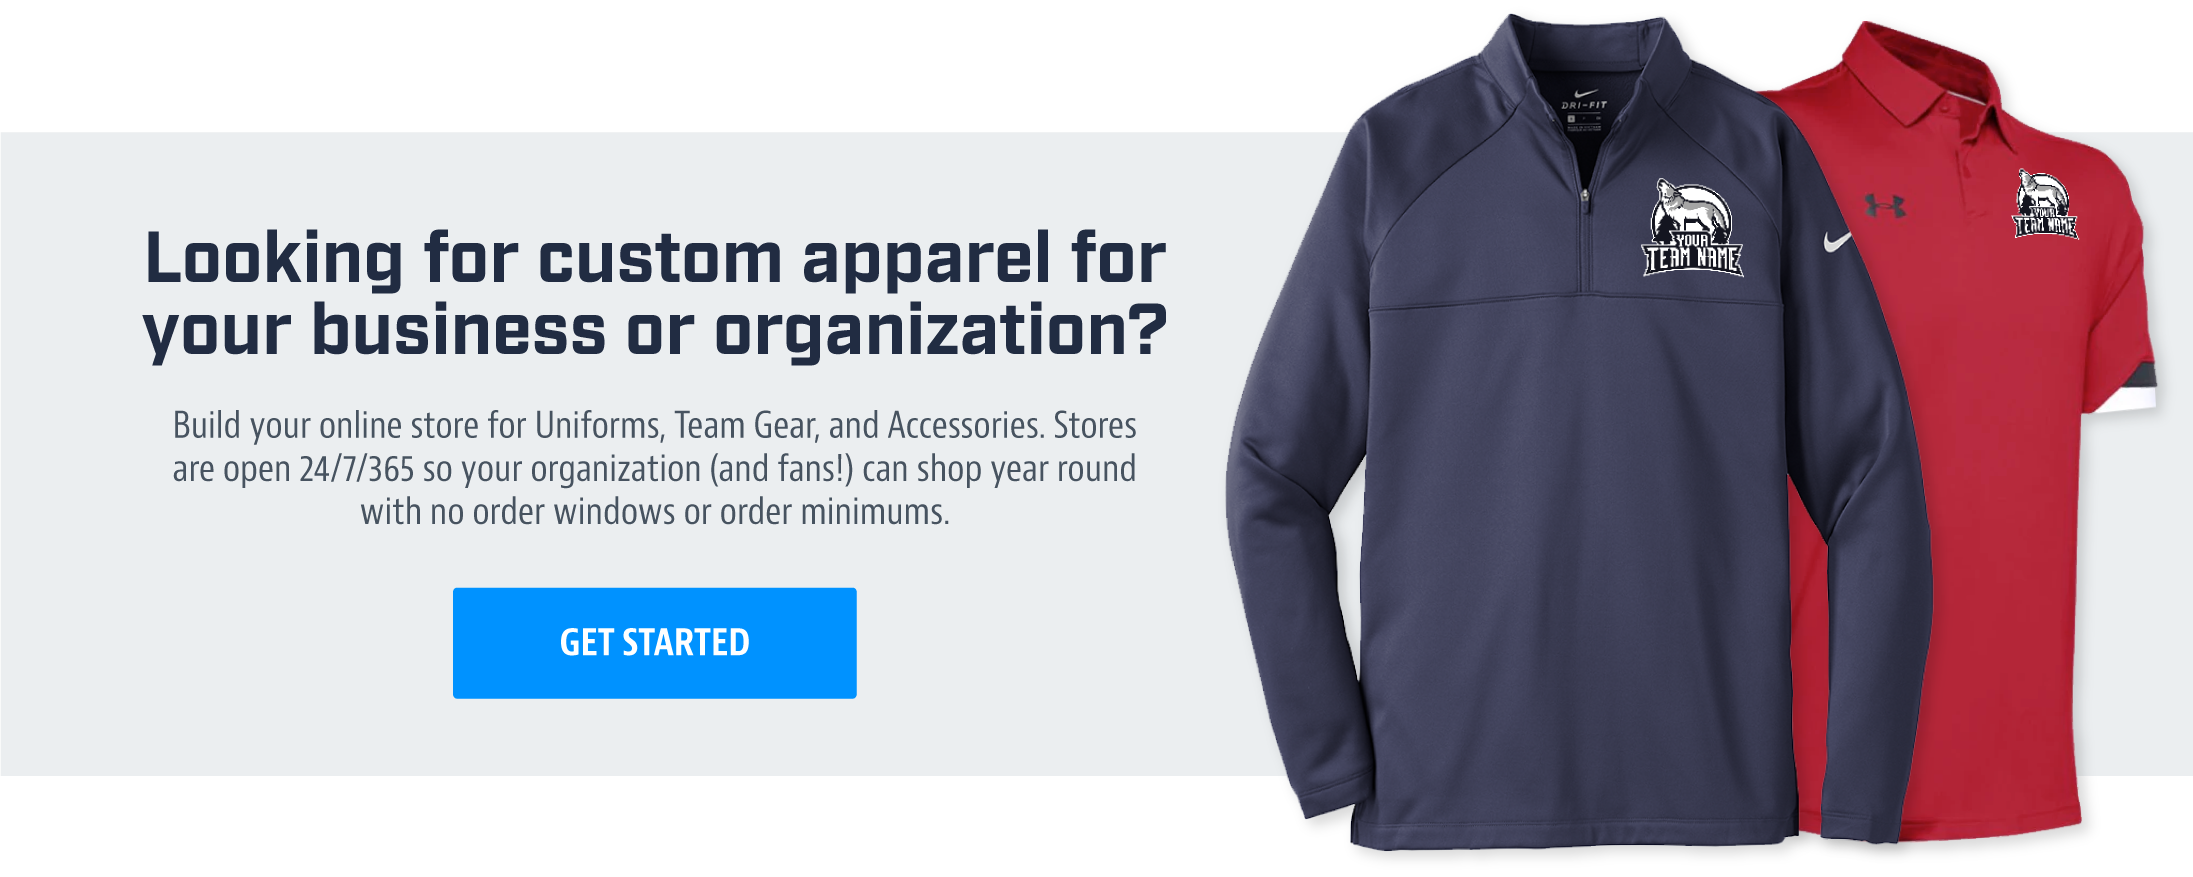 Looking for custom apparel for your business or organization?